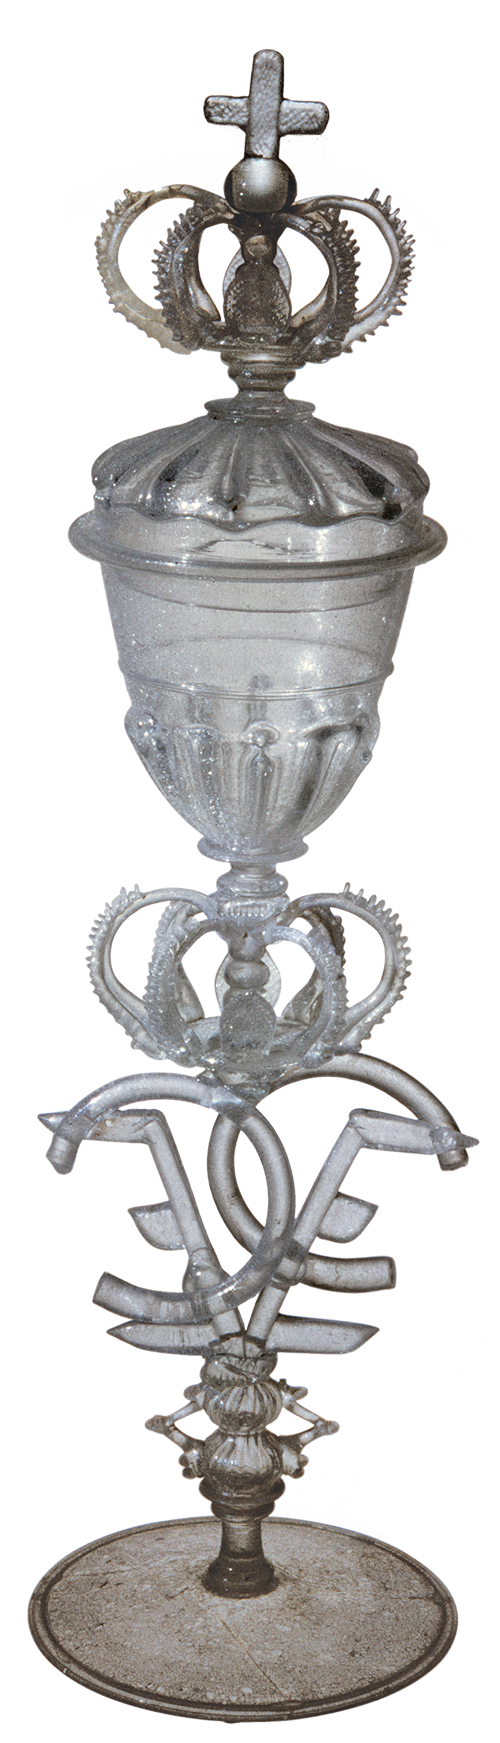 elaborate clear glass covered goblet with crown design